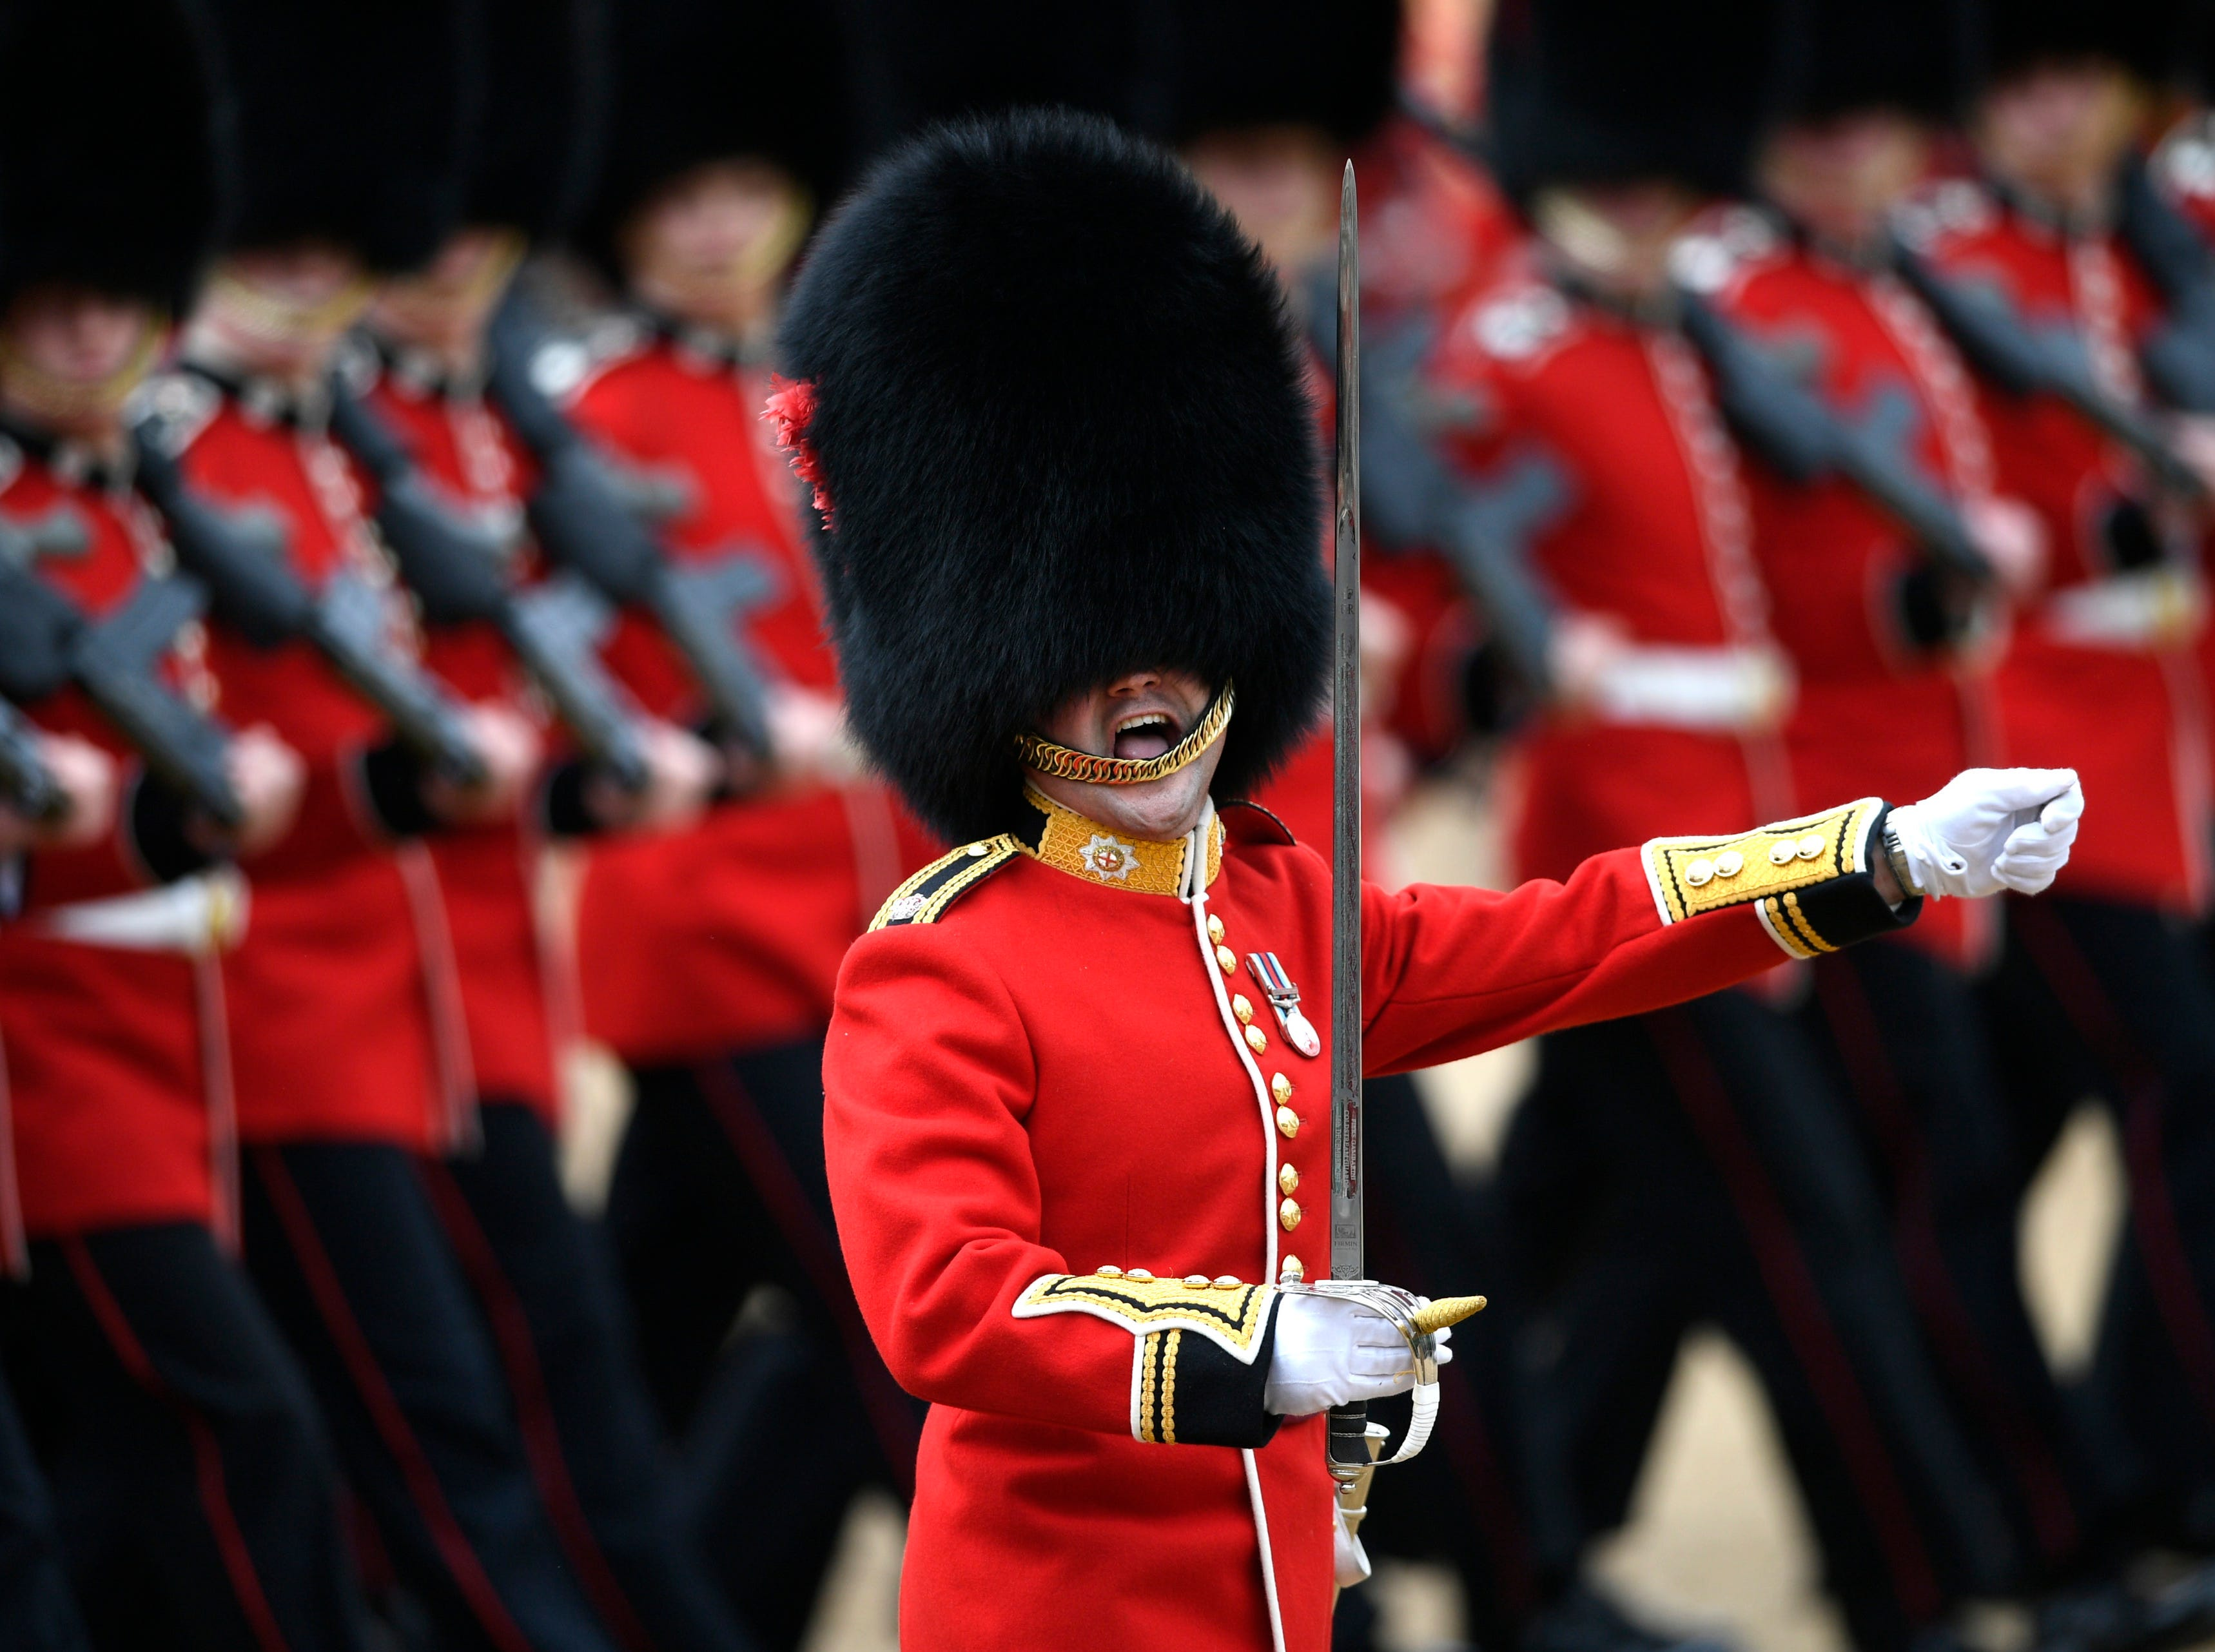 June 2, 2018: The Household Division led by the Coldsteam Guards take part in the Colonel's Review at Horseguards Parade in London. The Colonel's Review is the final public rehearsal of Britain's Queen Elizabeth's Birthday Parade, known as Trooping the Colour.